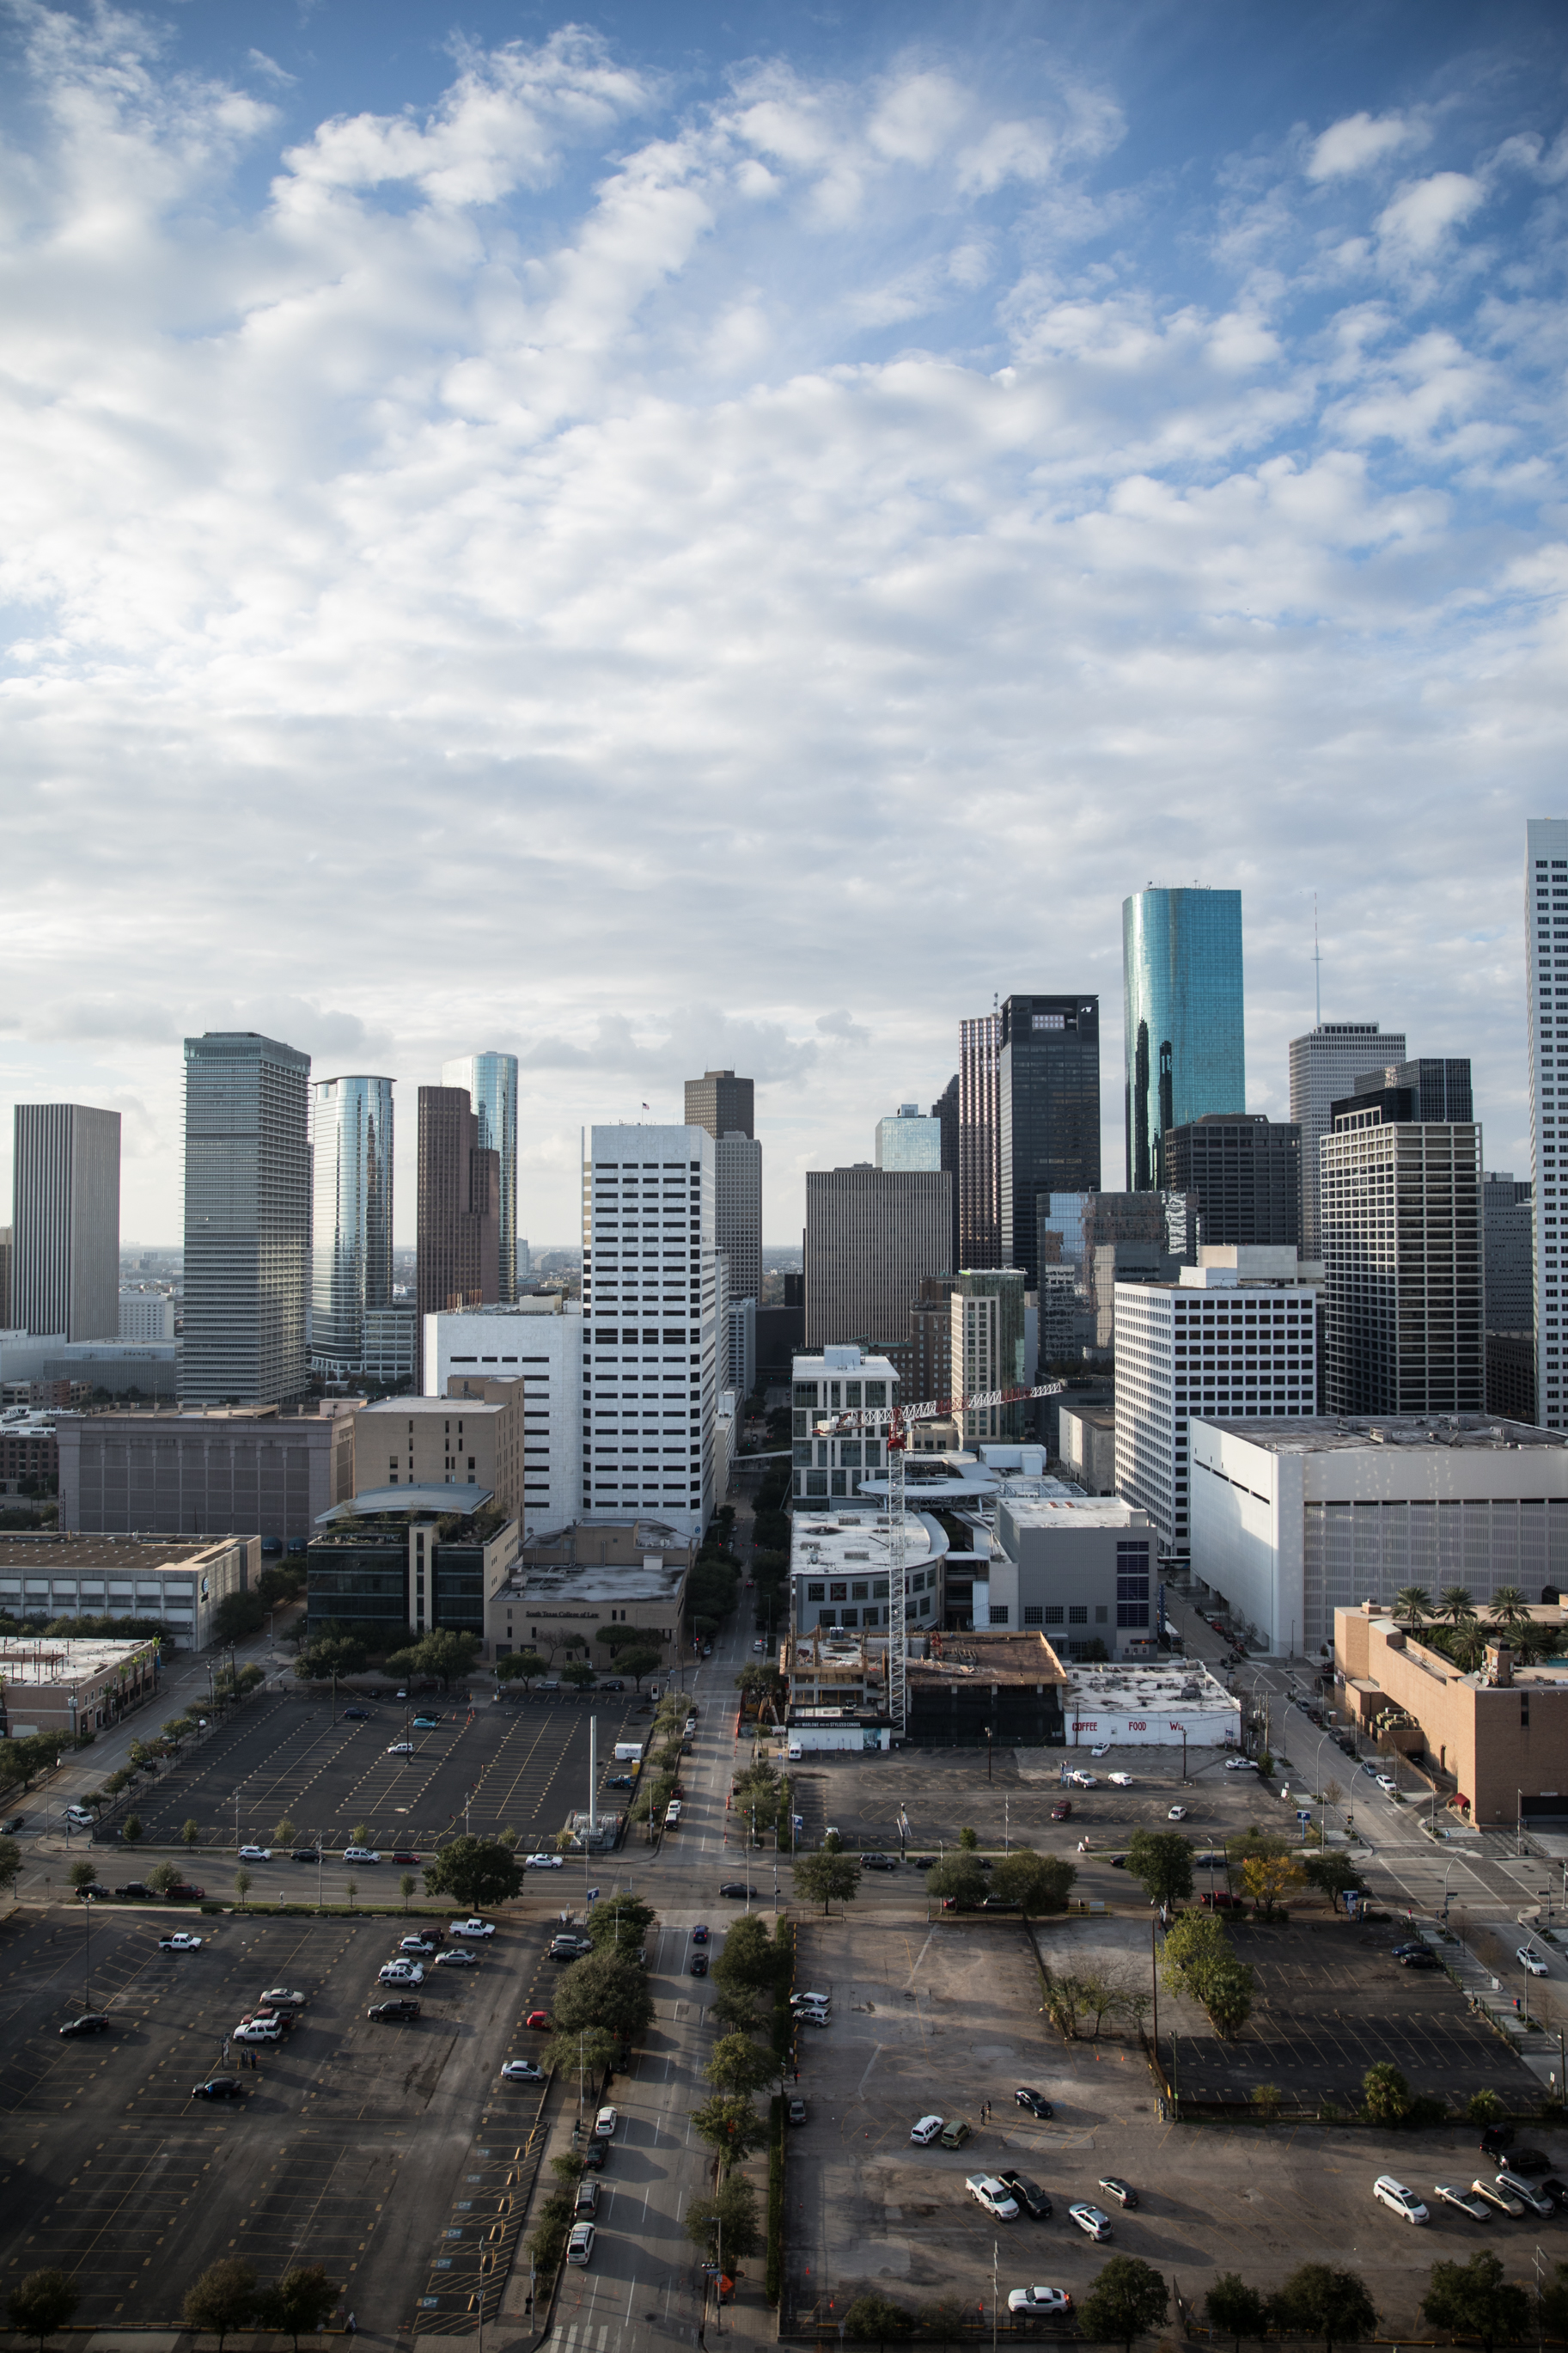 City view of Houston